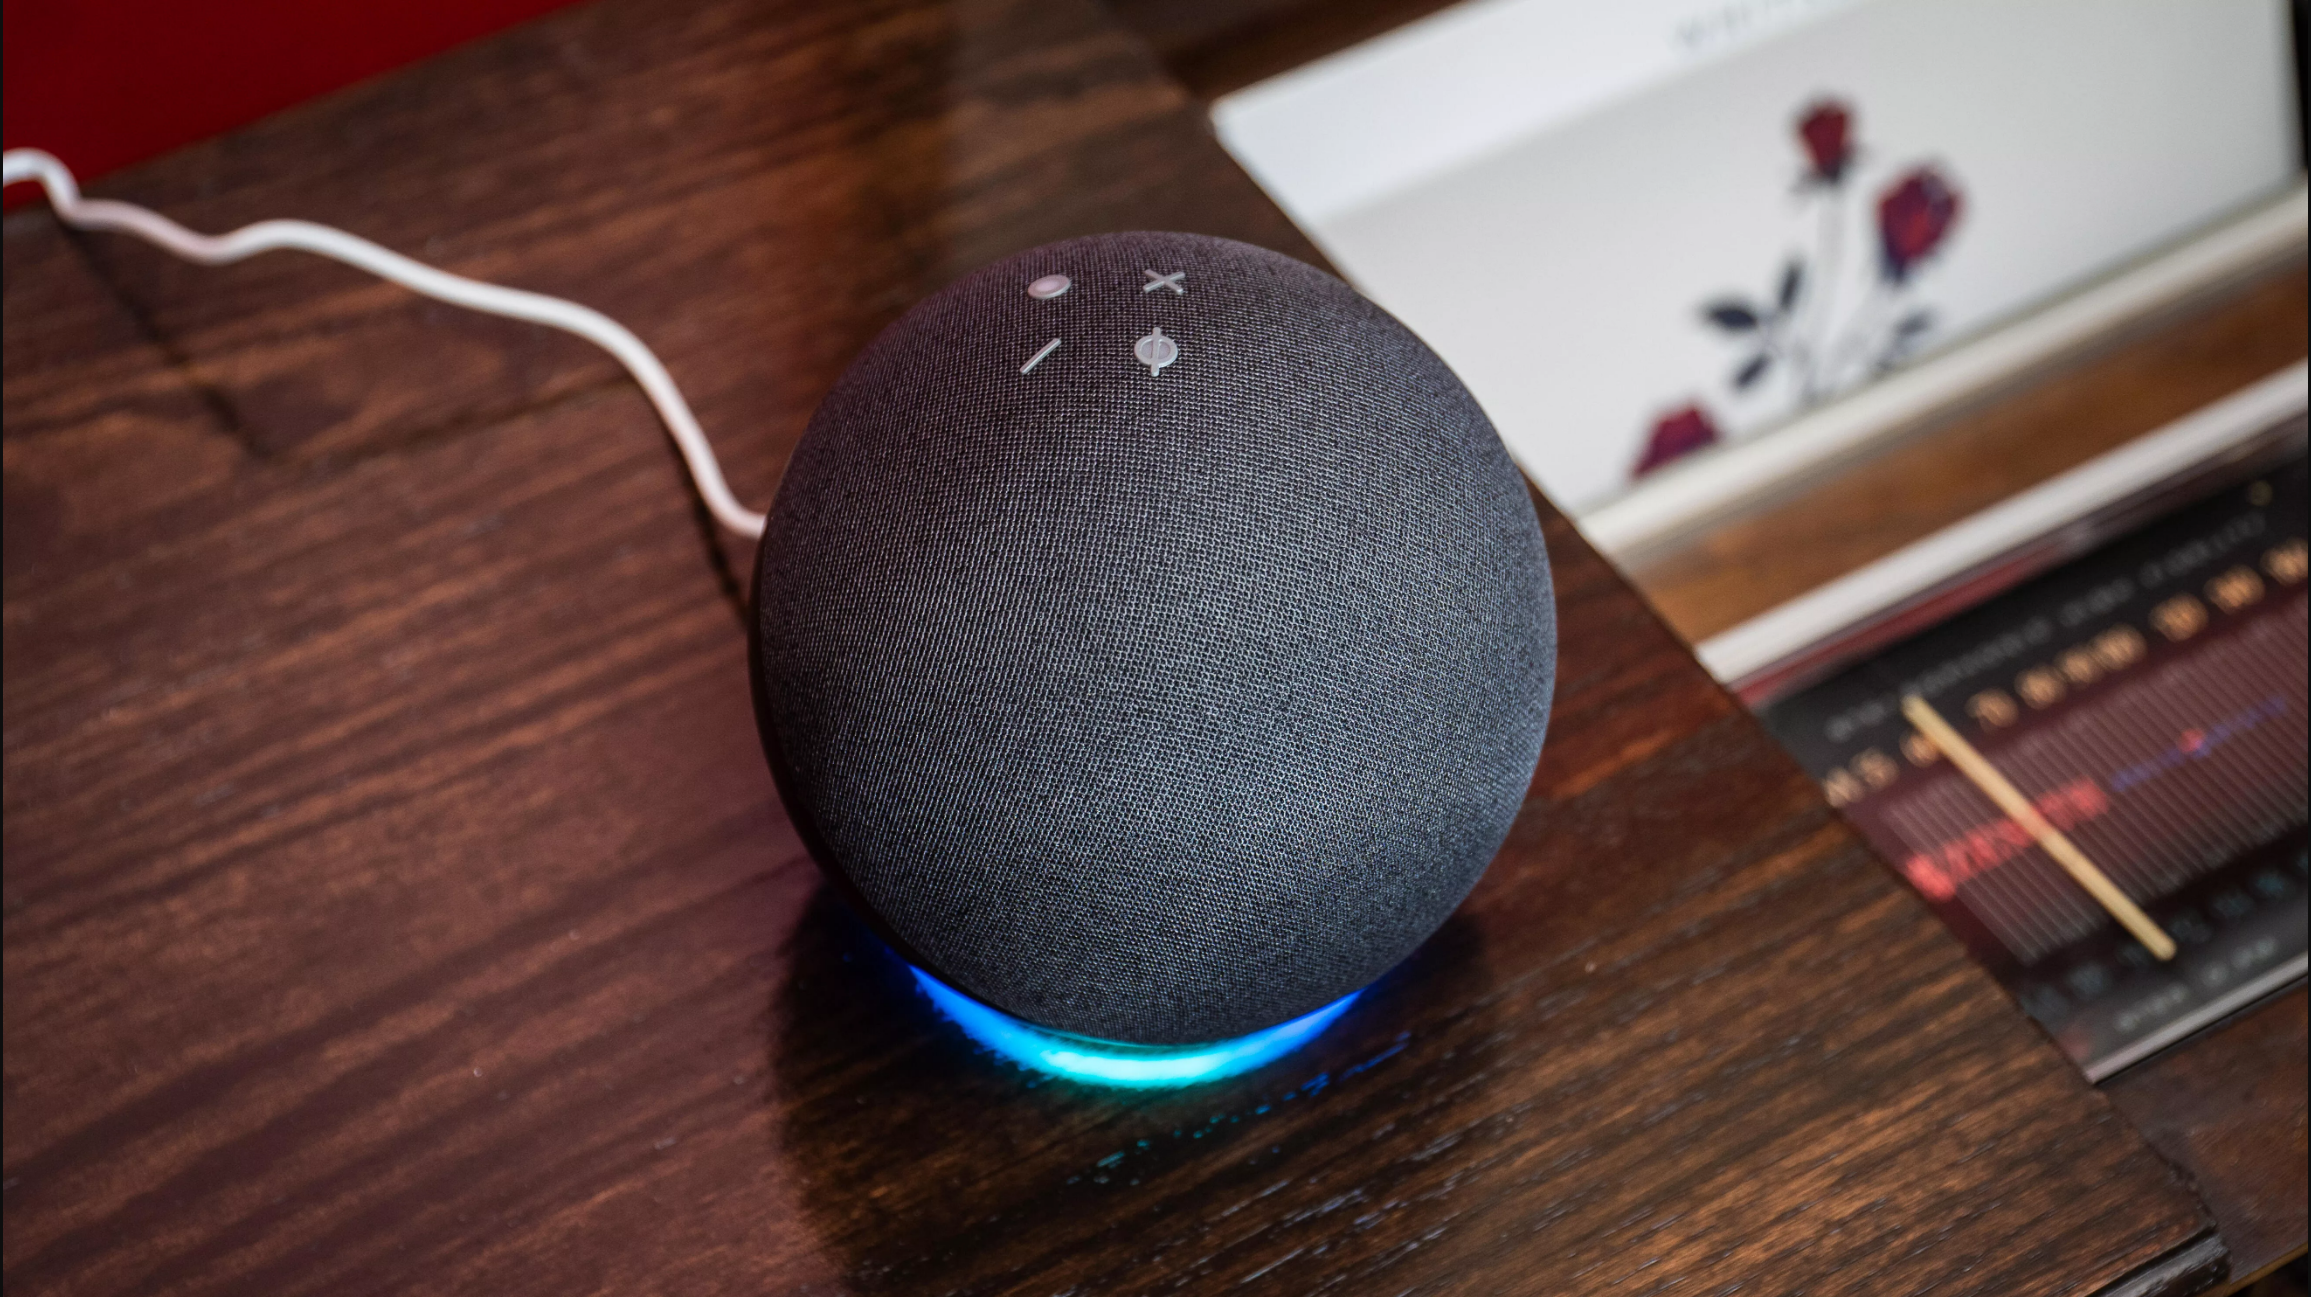 Top 5 Essential Smart Home Accessories!